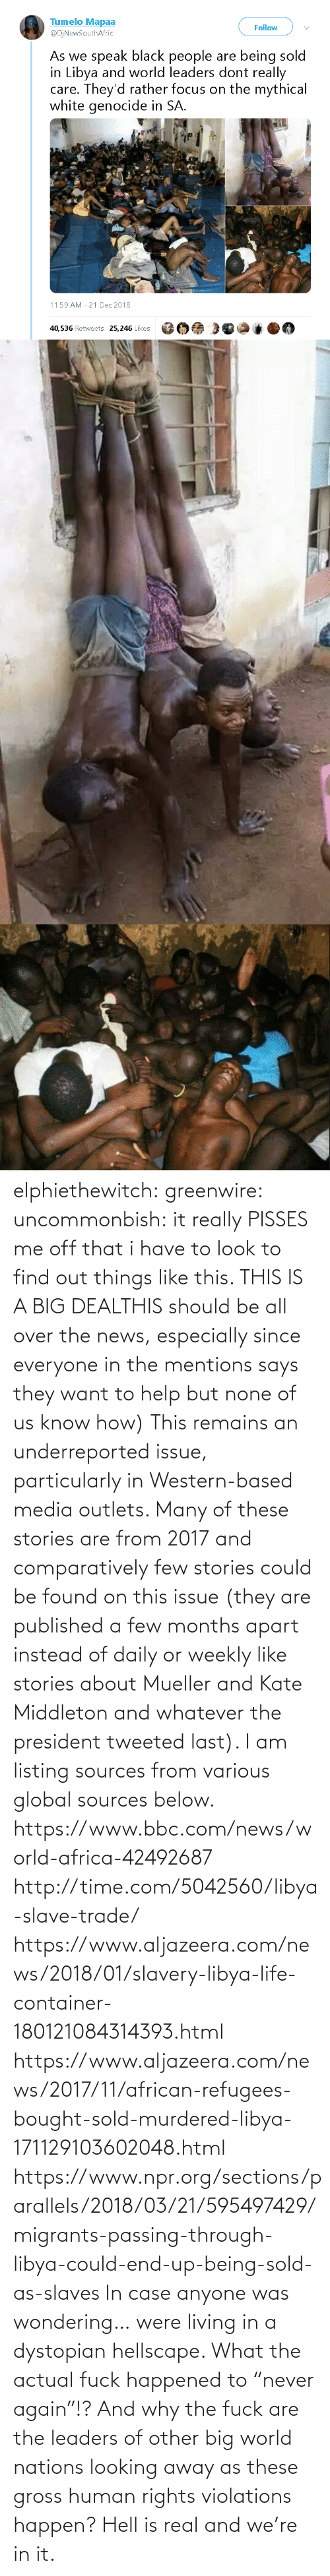 "html: elphiethewitch: greenwire:  uncommonbish:  it really PISSES me off that i have to look to find out things like this. THIS IS A BIG DEALTHIS should be all over the news, especially since everyone in the mentions says they want to help but none of us know how)  This remains an underreported issue, particularly in Western-based media outlets. Many of these stories are from 2017 and comparatively few stories could be found on this issue (they are published a few months apart instead of daily or weekly like stories about Mueller and Kate Middleton and whatever the president tweeted last). I am listing sources from various global sources below.  https://www.bbc.com/news/world-africa-42492687 http://time.com/5042560/libya-slave-trade/ https://www.aljazeera.com/news/2018/01/slavery-libya-life-container-180121084314393.html https://www.aljazeera.com/news/2017/11/african-refugees-bought-sold-murdered-libya-171129103602048.html https://www.npr.org/sections/parallels/2018/03/21/595497429/migrants-passing-through-libya-could-end-up-being-sold-as-slaves   In case anyone was wondering… were living in a dystopian hellscape.  What the actual fuck happened to ""never again""!? And why the fuck are the leaders of other big world nations looking away as these gross human rights violations happen?  Hell is real and we're in it."